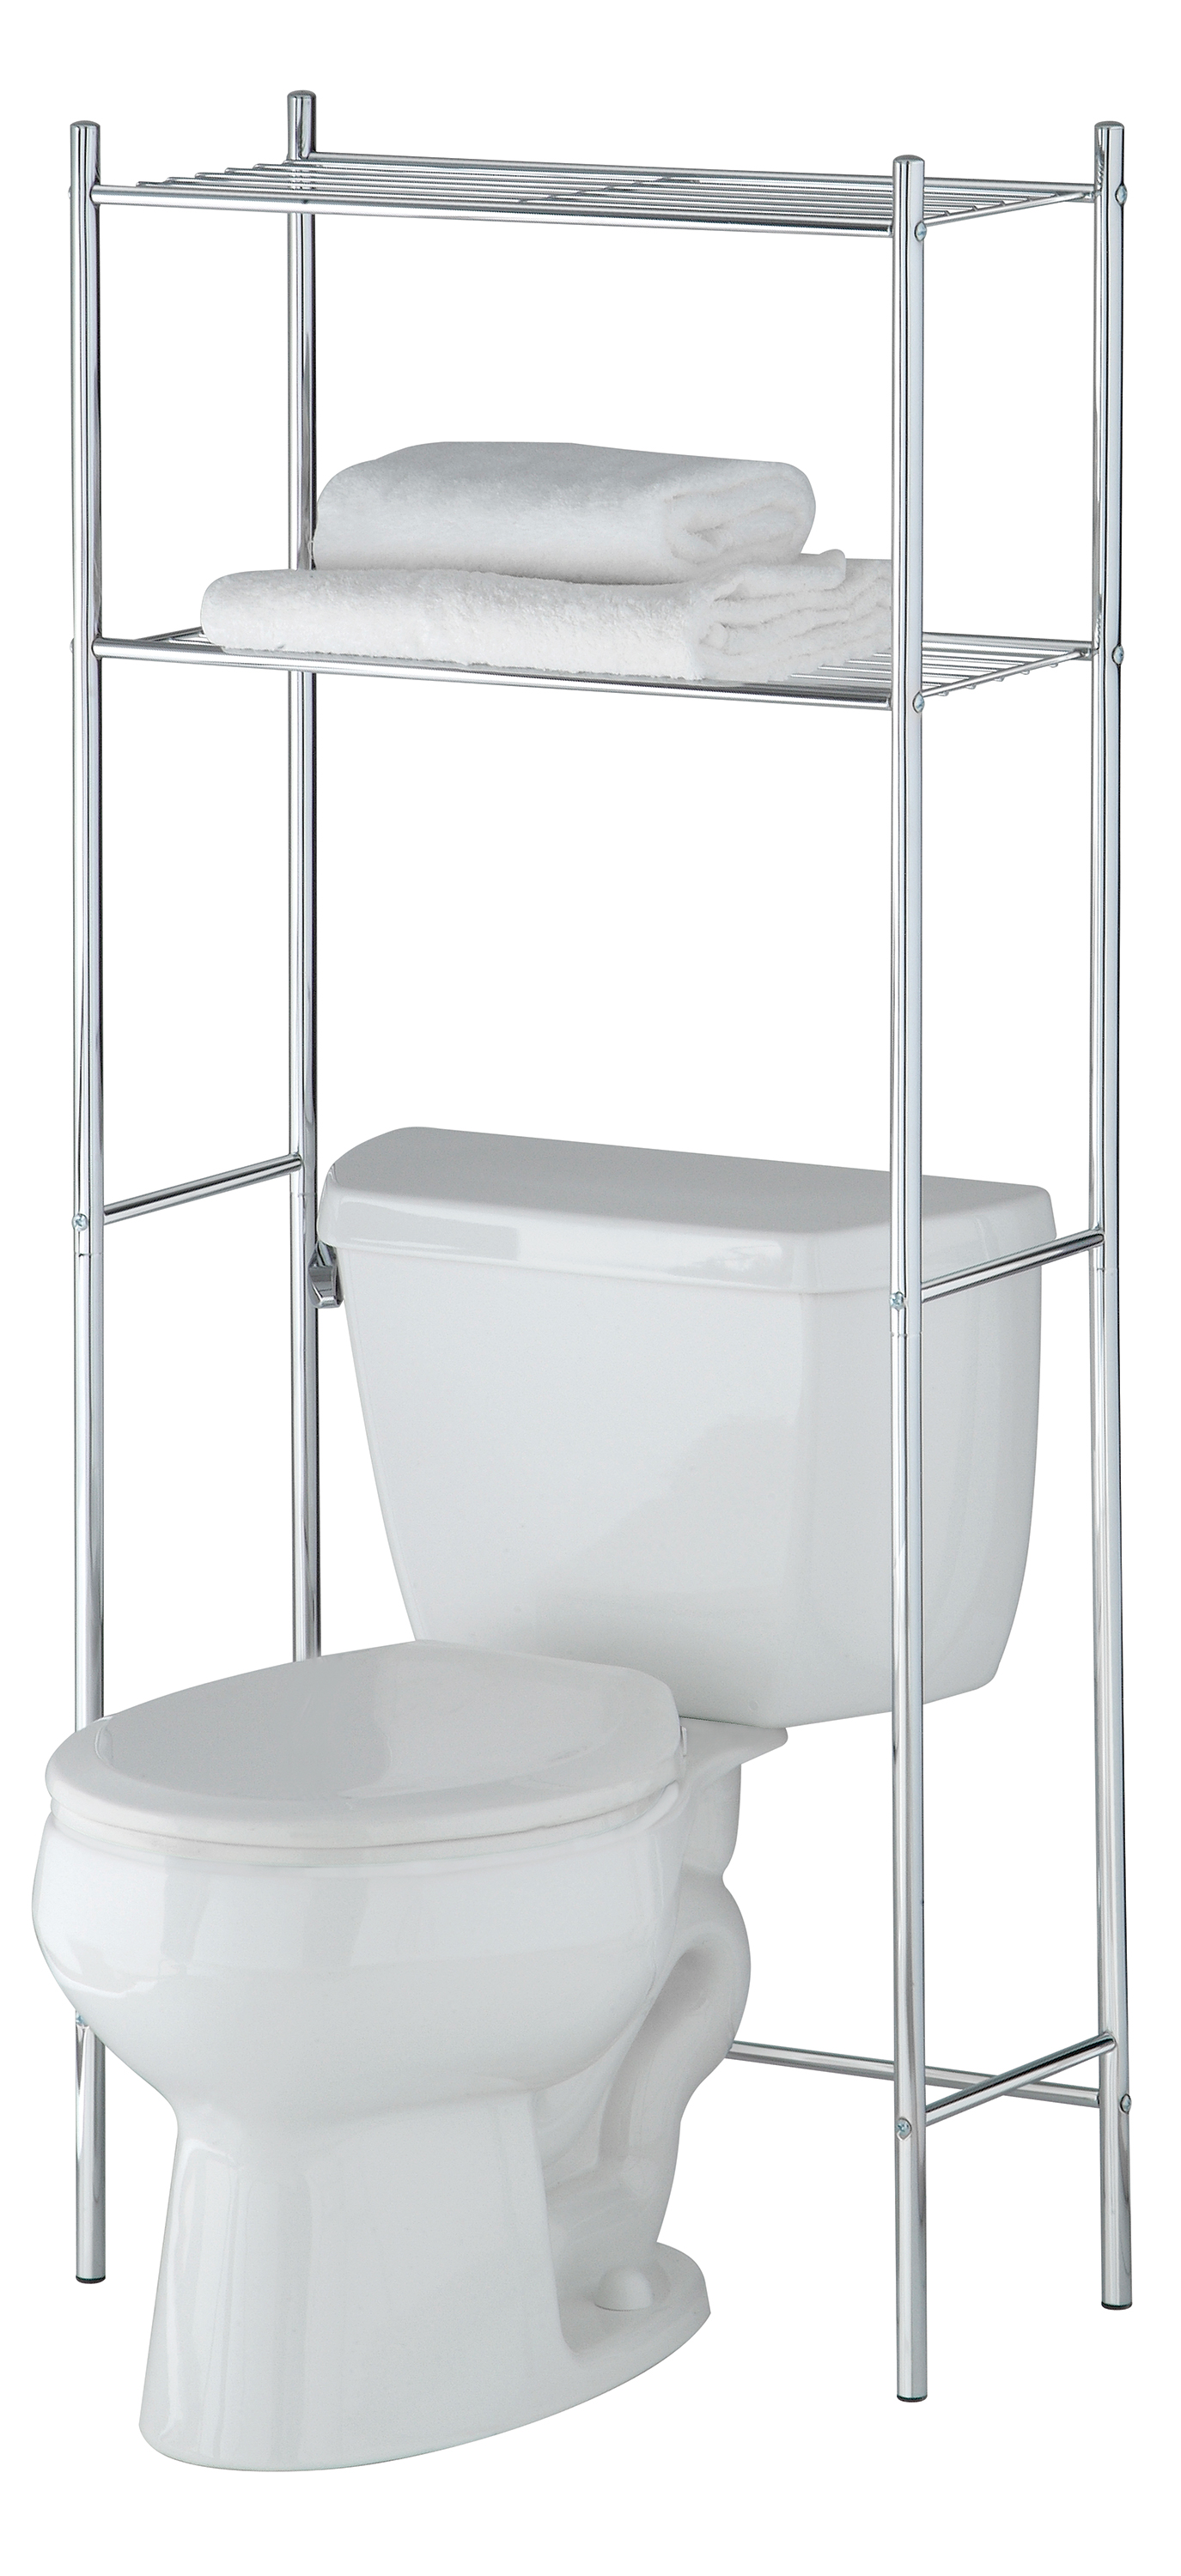 Taymor space saver shelf aeromax building supplies for Chapter bathroom space saver white assembly instructions